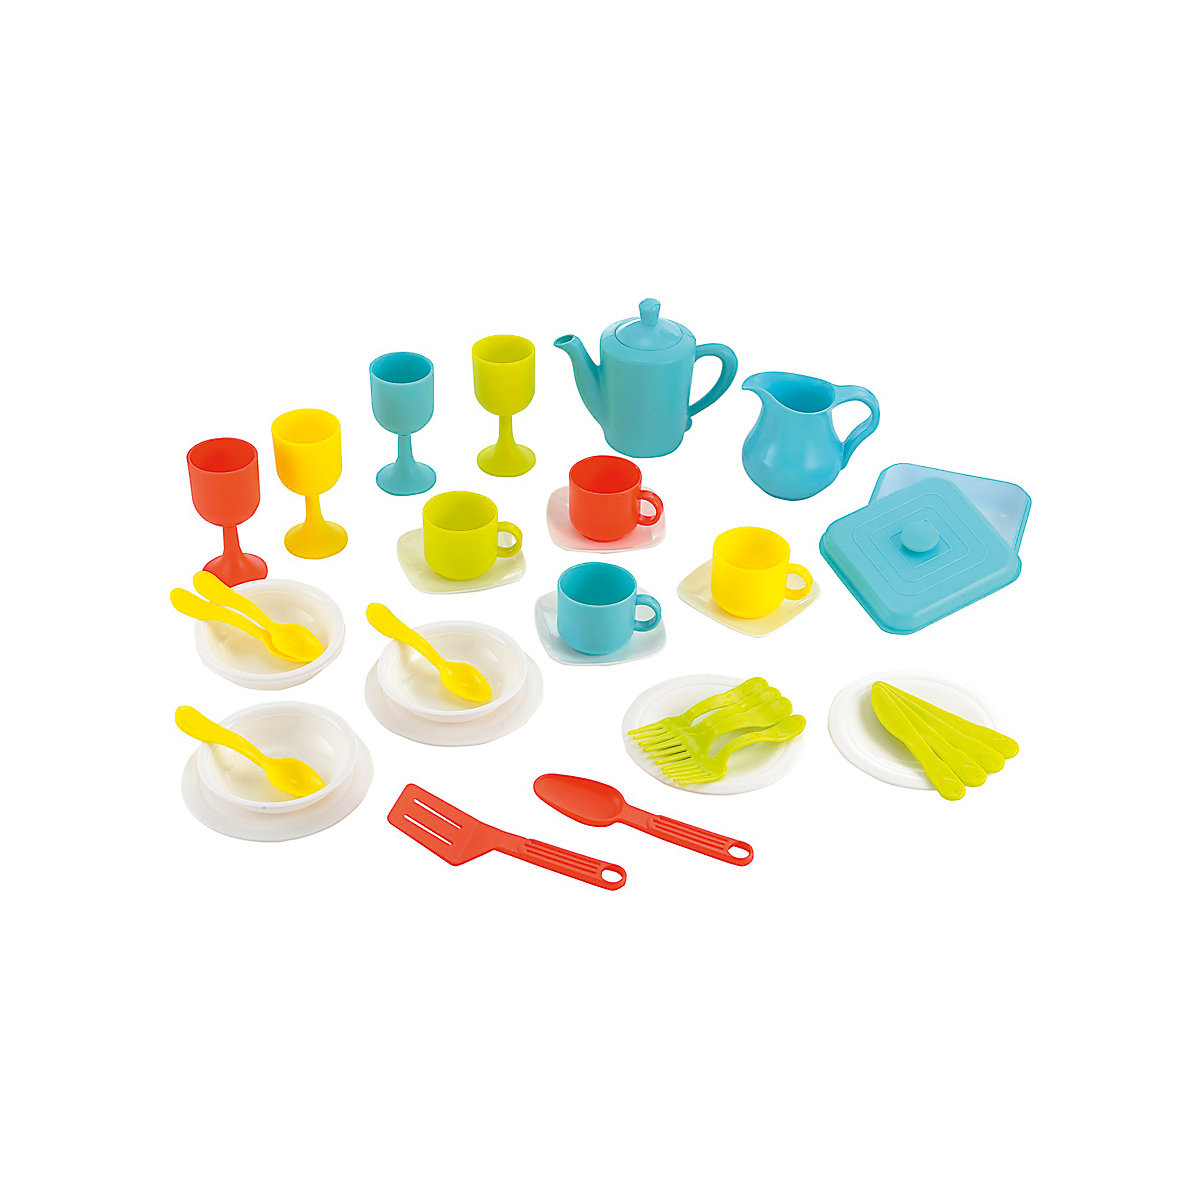 New ELC Boys and Girls Dinner Set Toy From 3 years